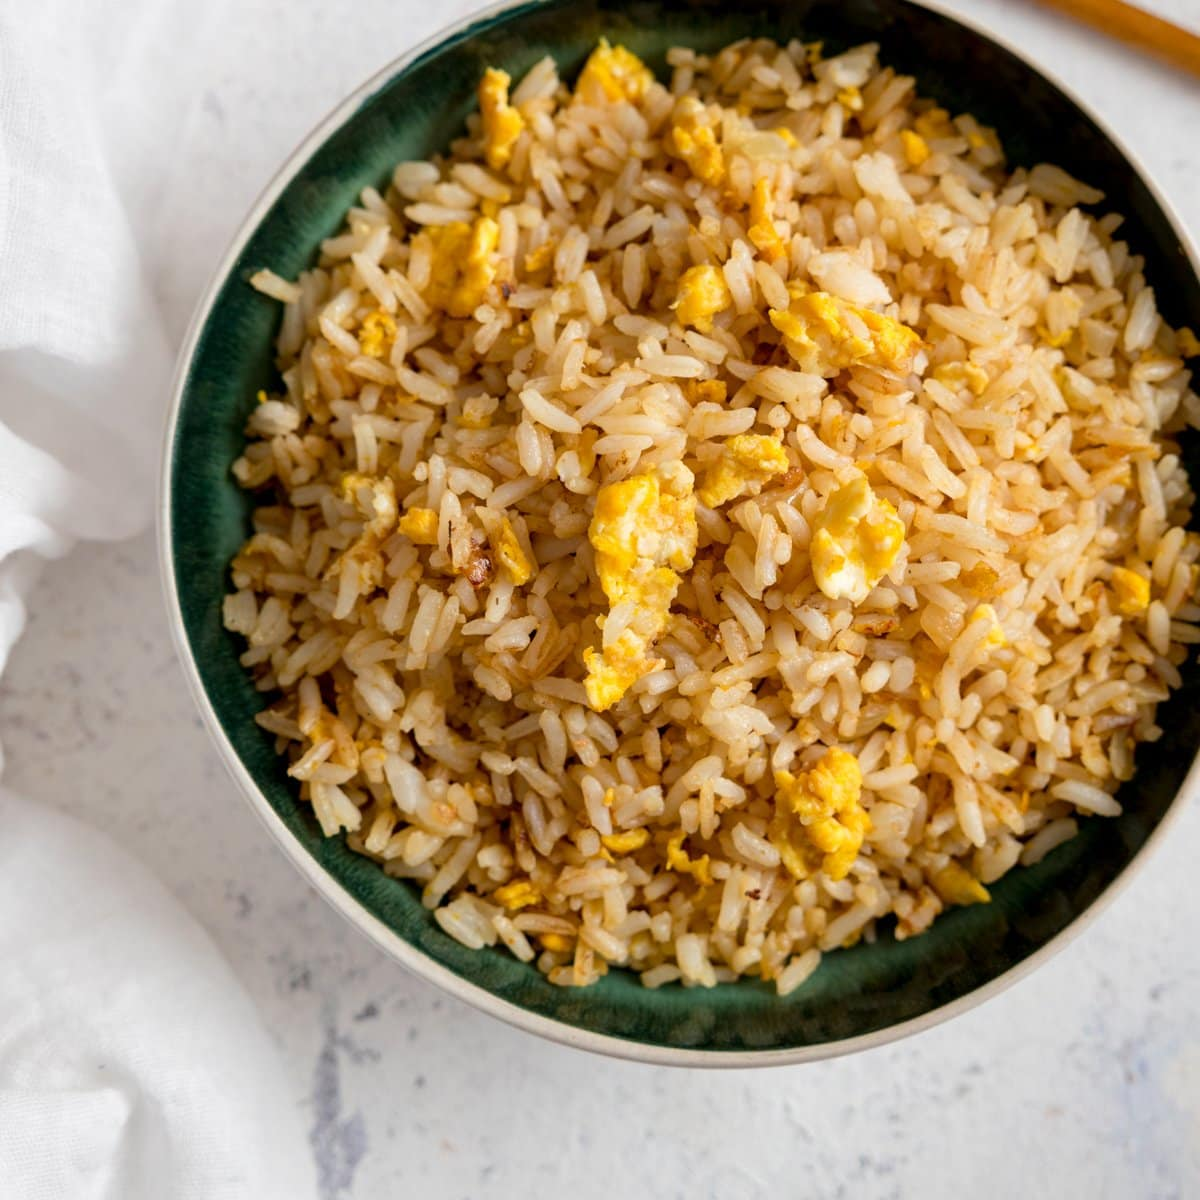 Egg fried rice on a dark bowl on a white background.